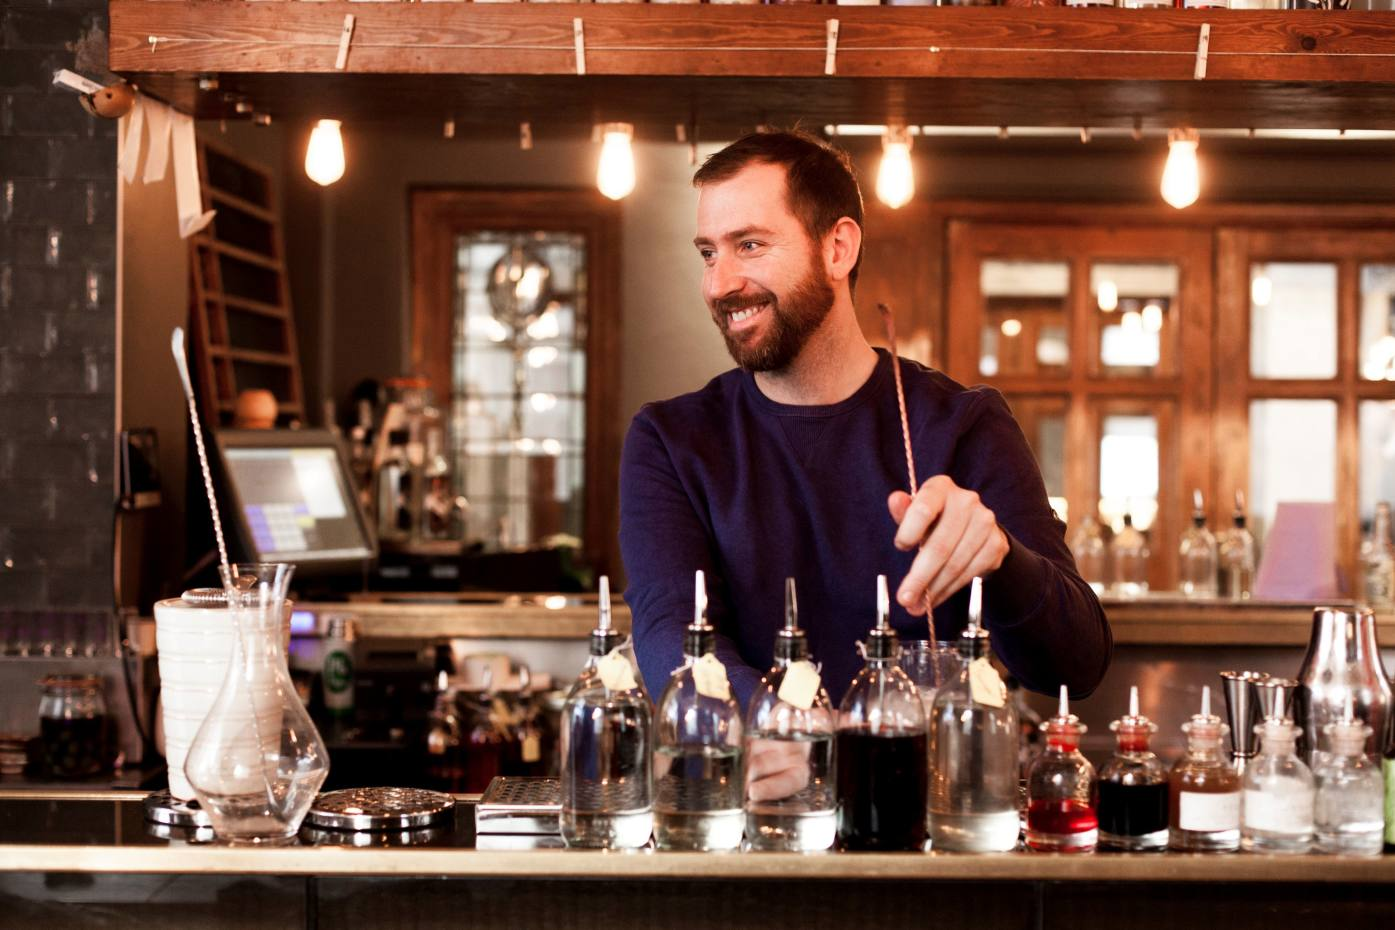 Matt Whiley, the bartender who has transformed the London drinks scene with Peg + Patriot, Purl and the Worship Street Whistling Shop